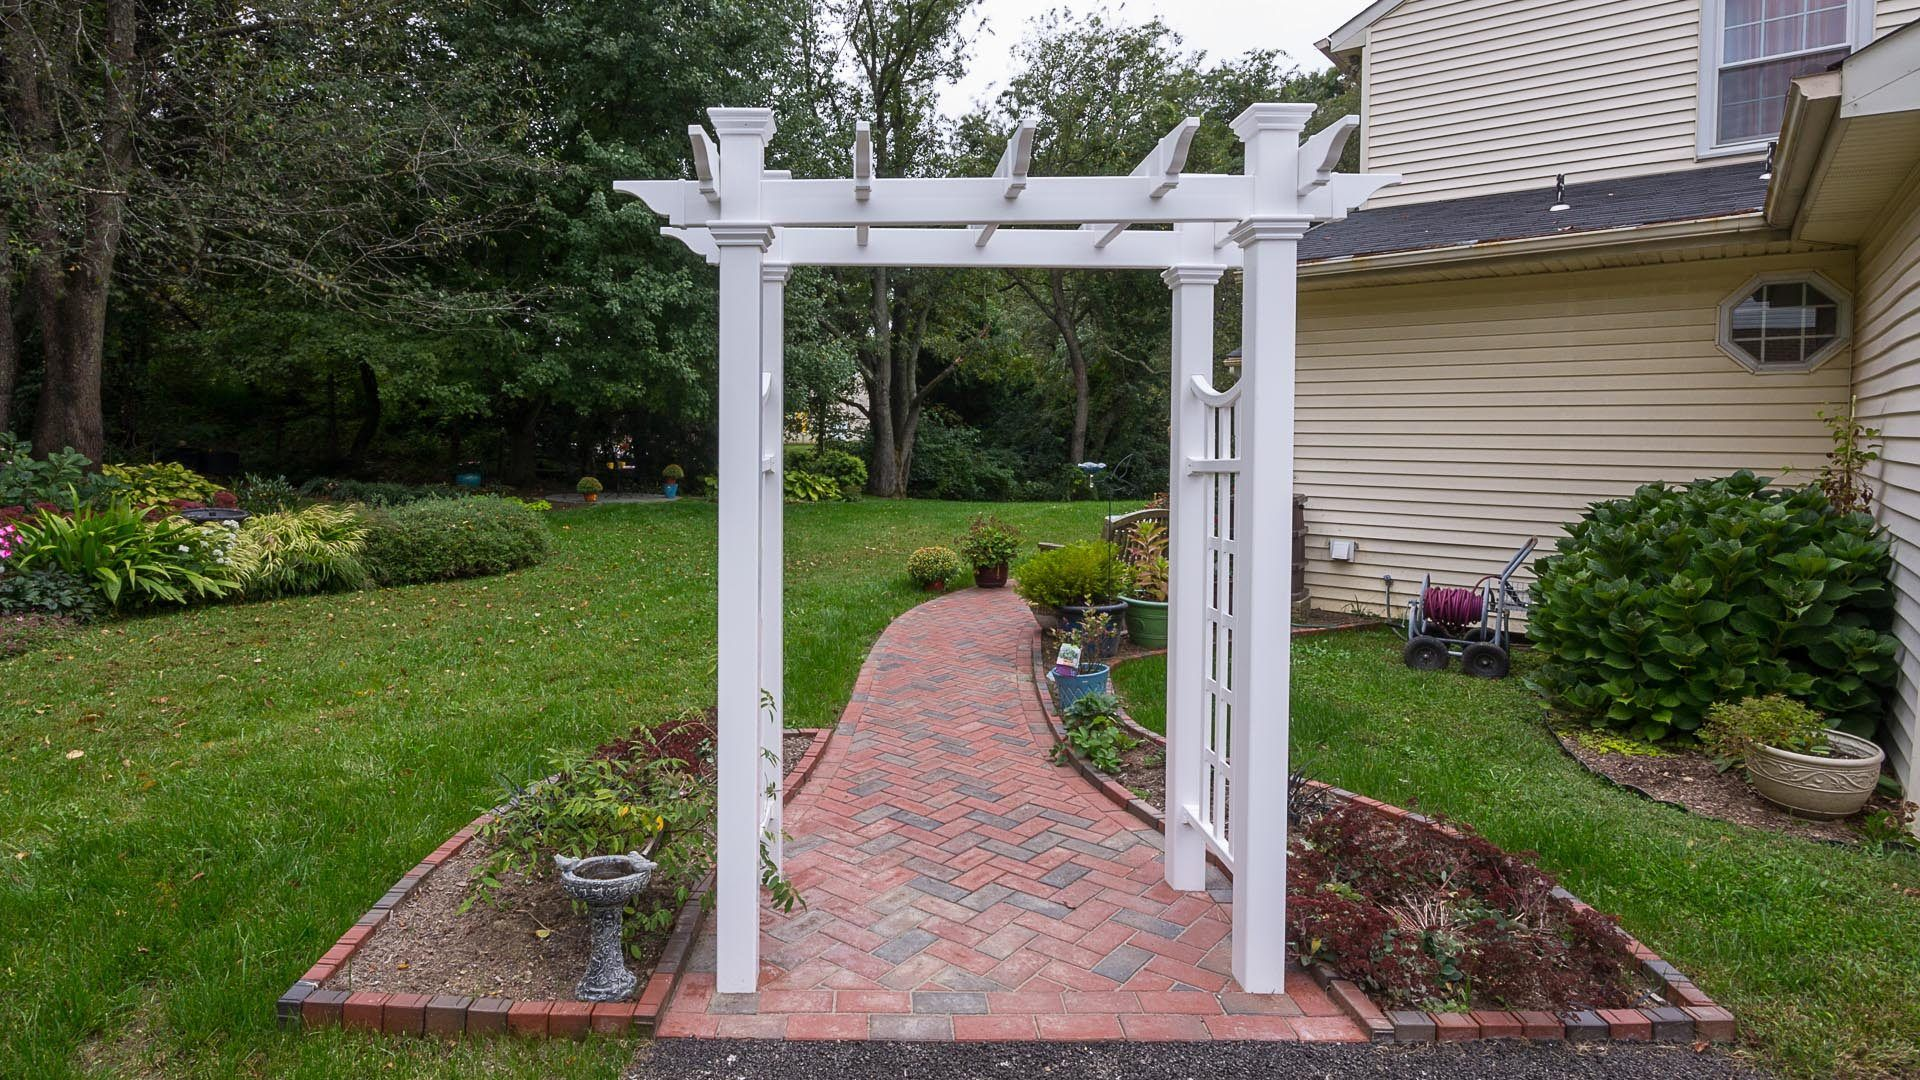 Deck Design & Installation | Fence & Gate Installation ... on Disabatino Outdoor Living id=74189